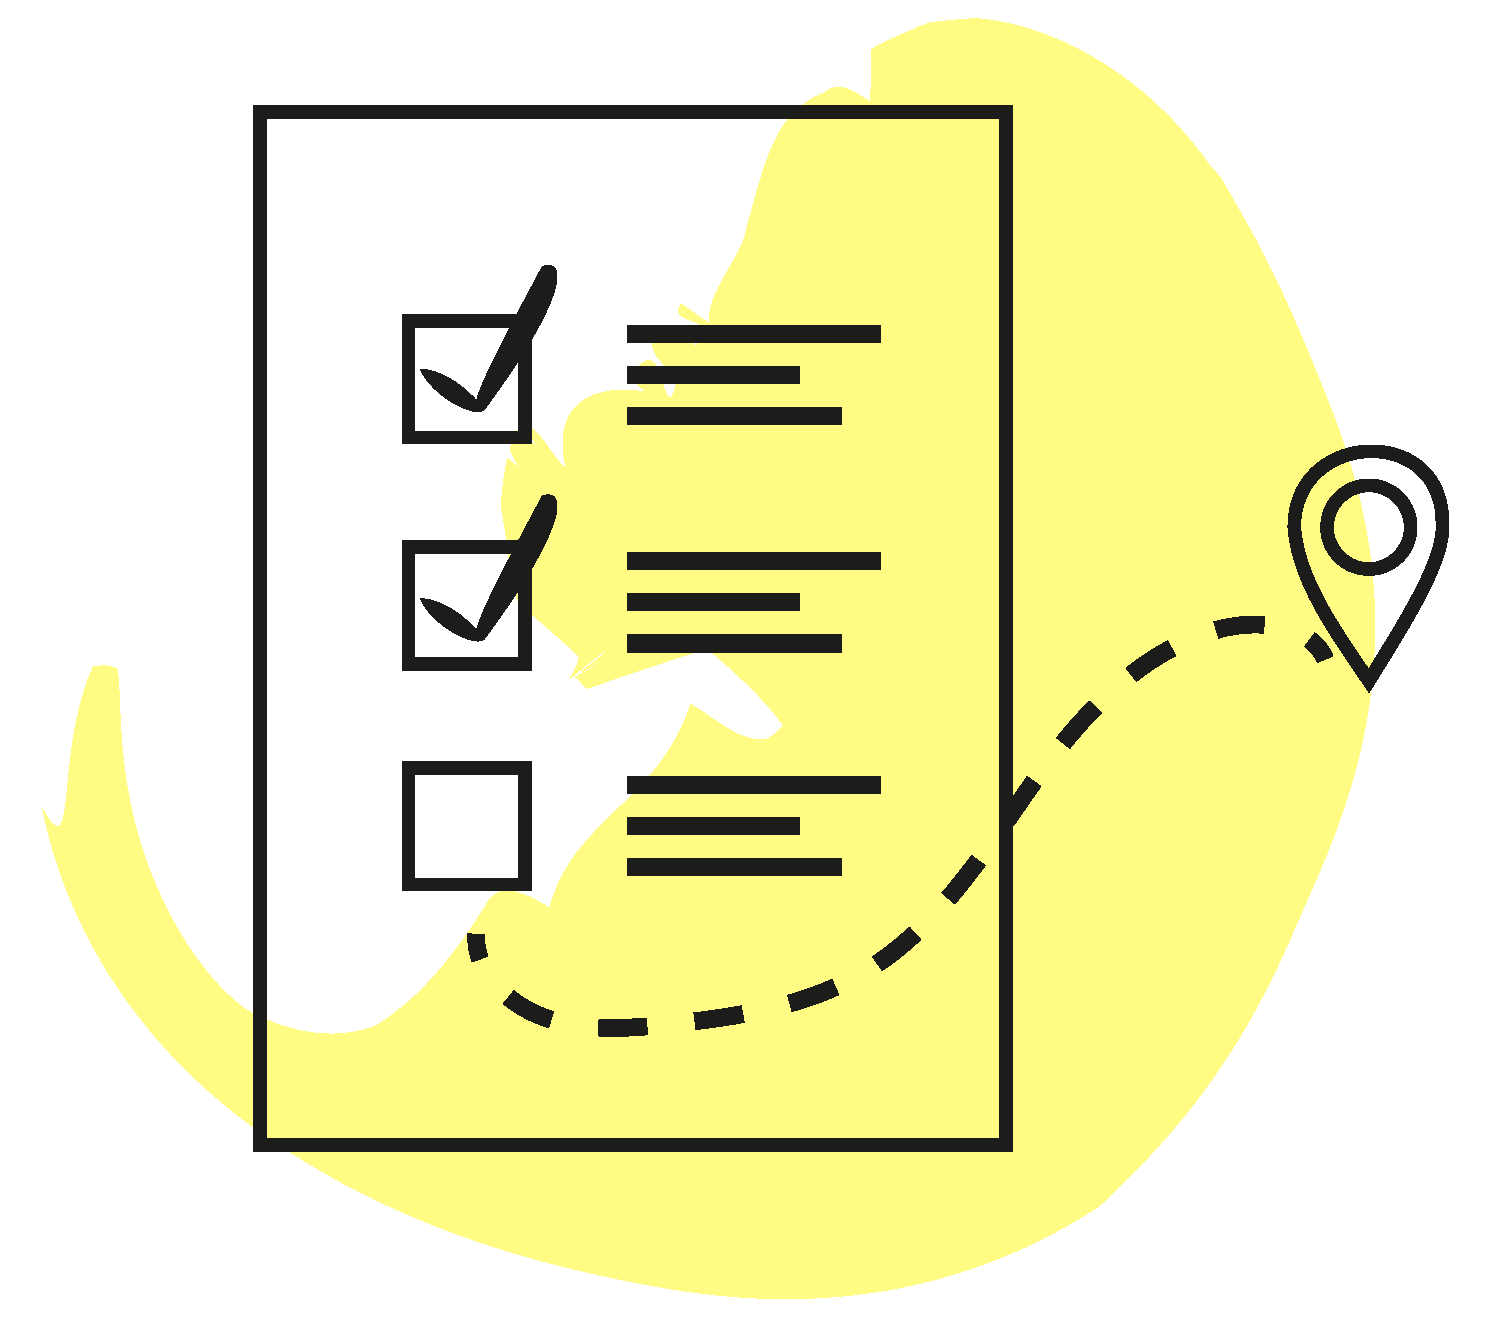 Incubator Studio pictogram representing a checklist consulting coaching branding marketing growth efficiency methodology expertise